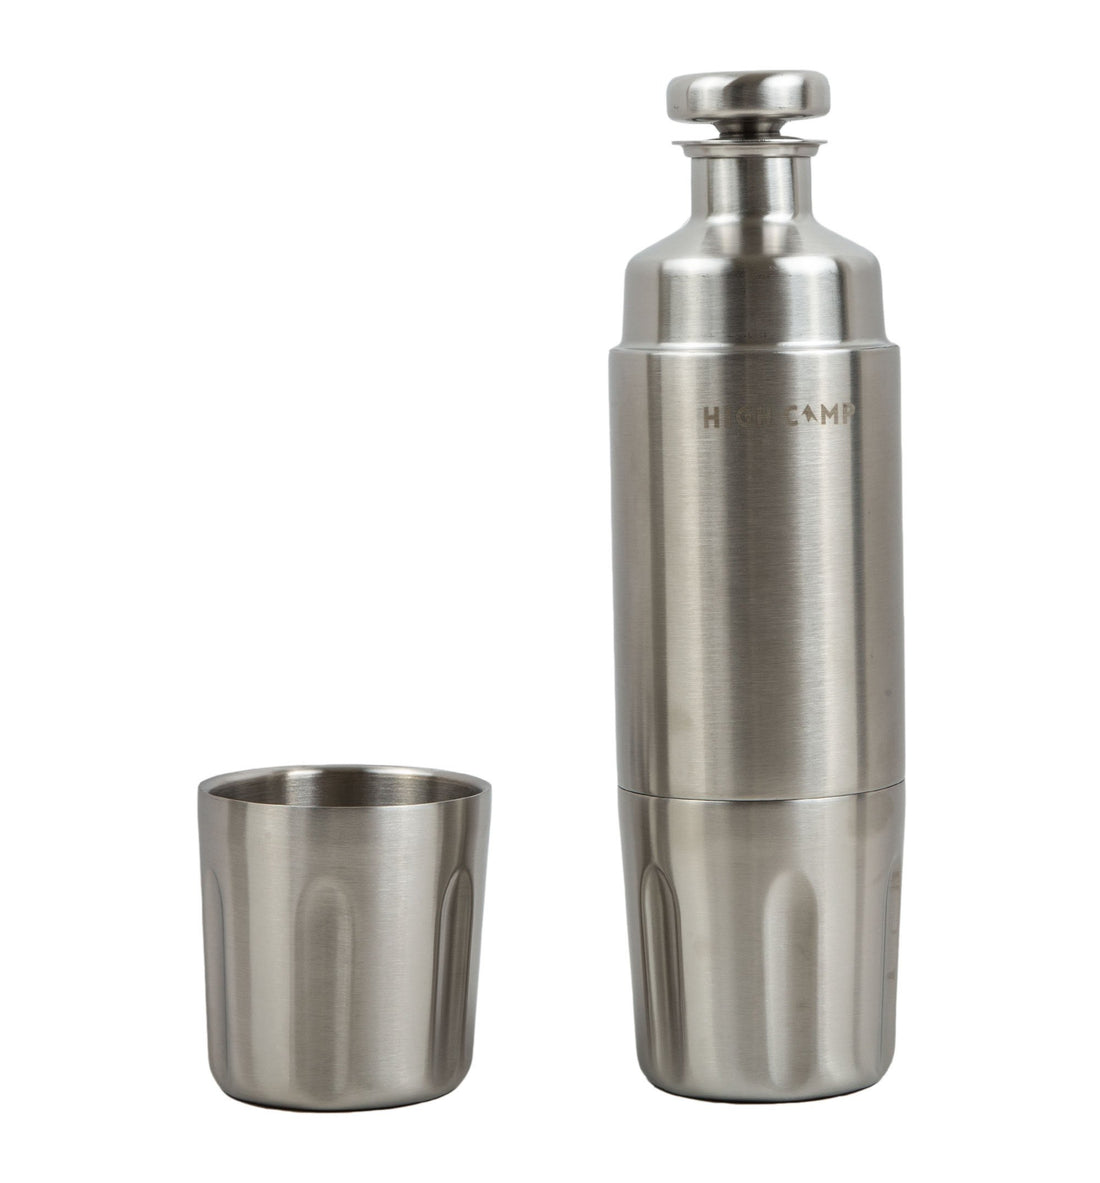 High Camp Firelight Flask - 750ml - Outdoor Living/Travel - Iron and Resin